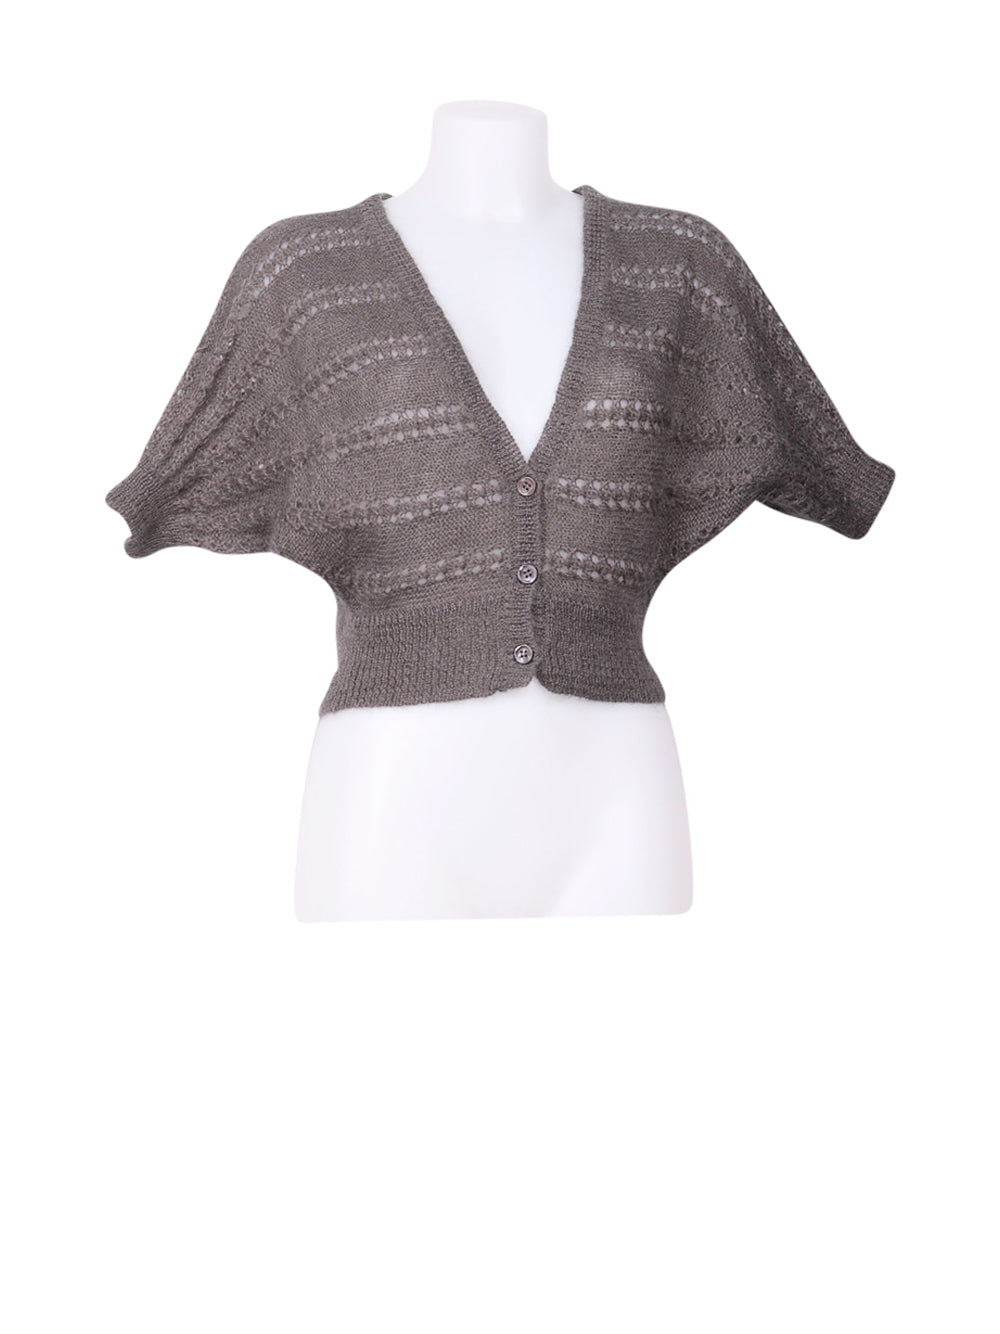 Front photo of Preloved Intimissimi Grey Woman's bolero - size 8/S